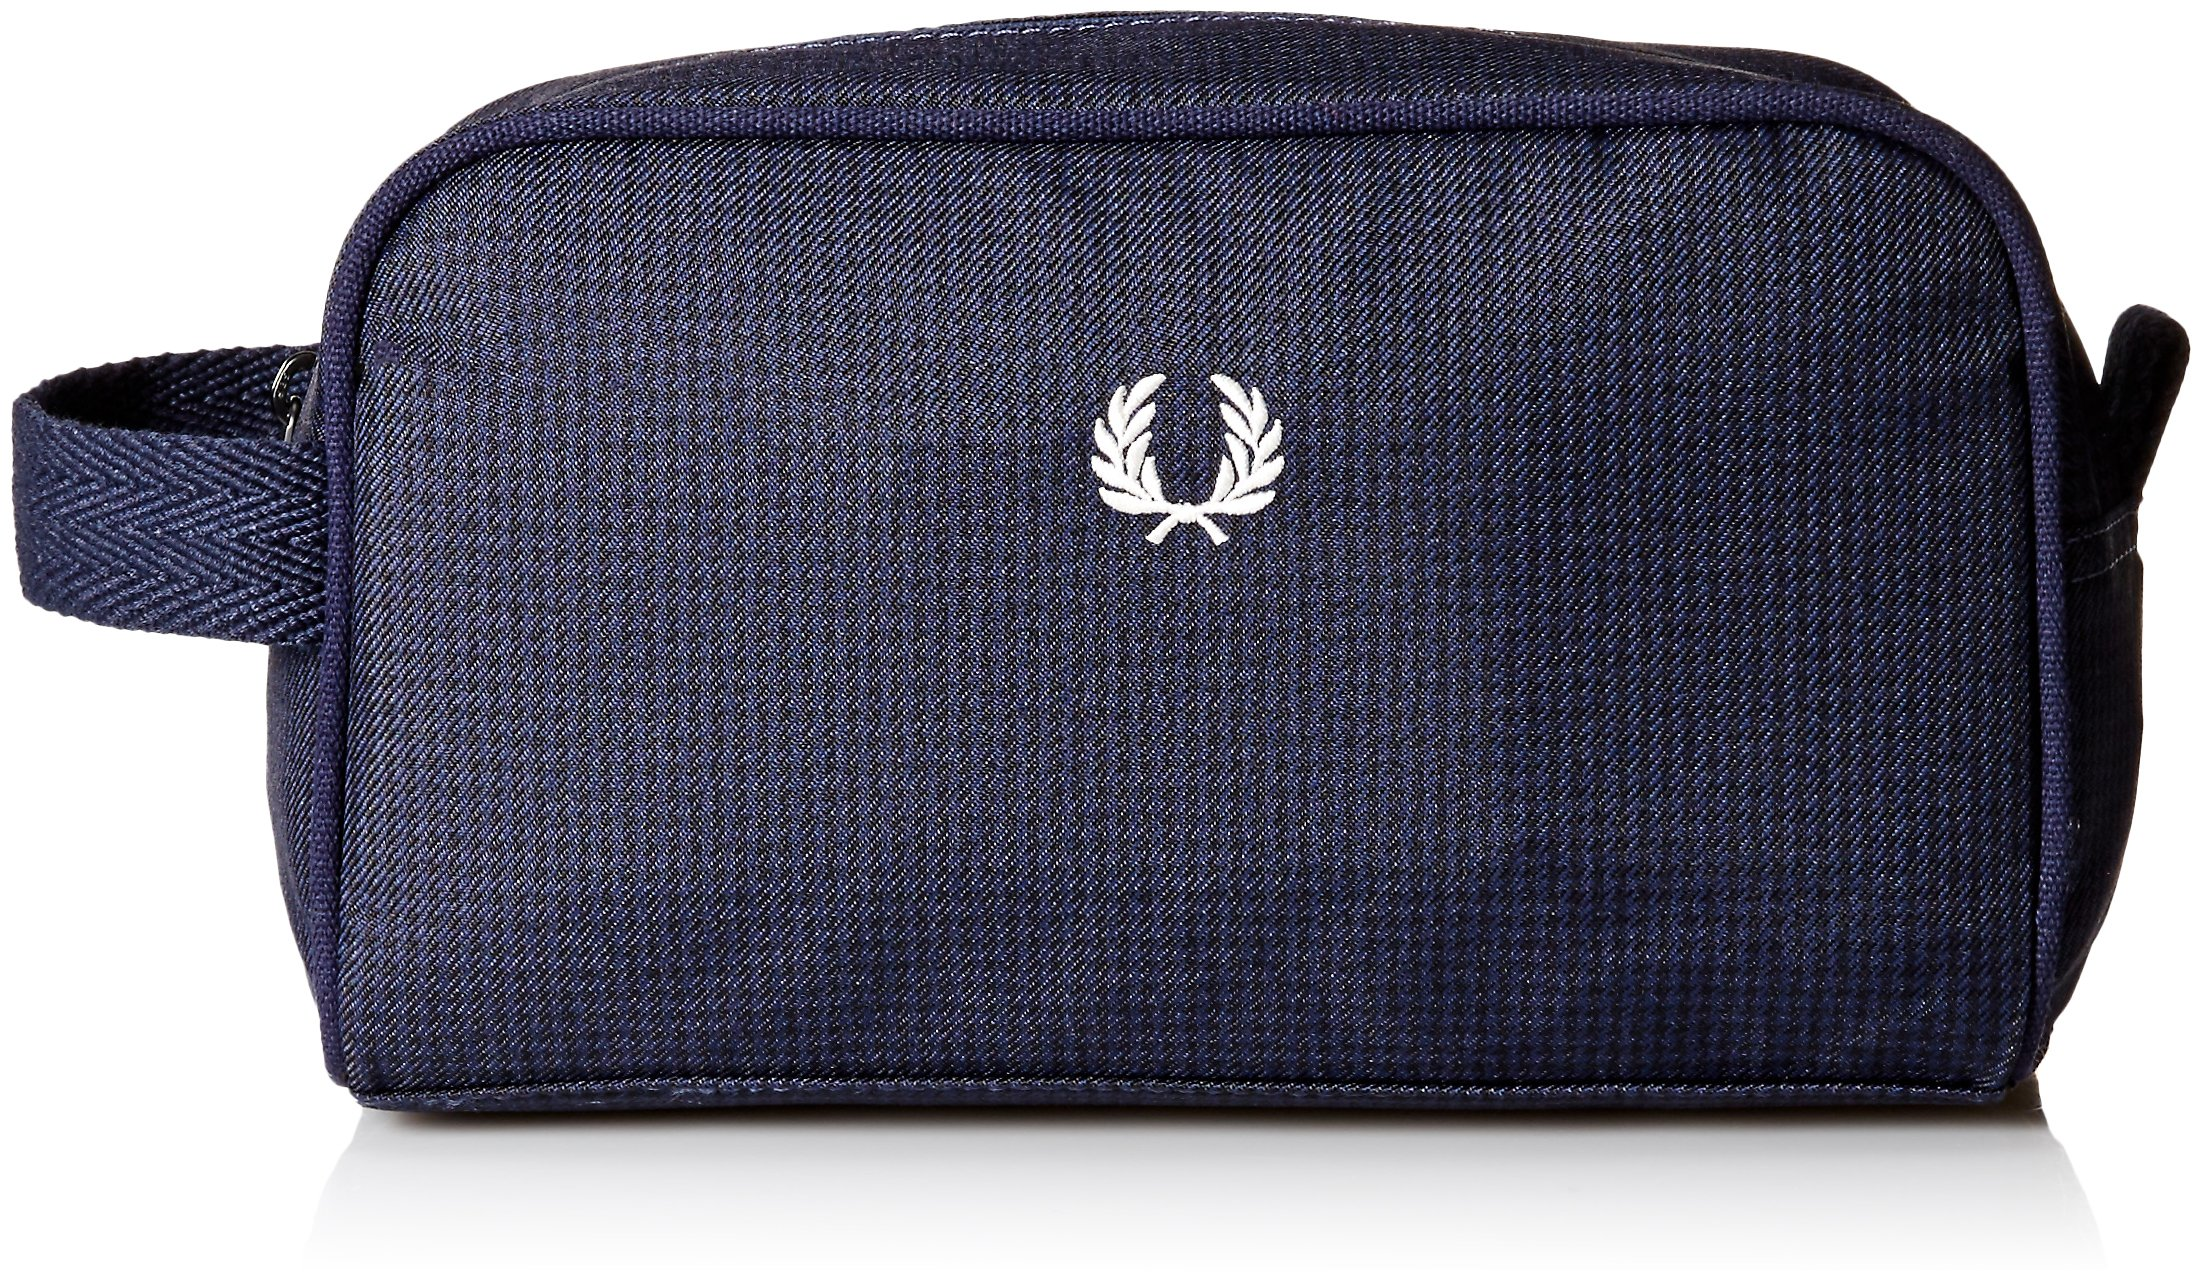 Fred Perry Men's Checked Twill Travel Kit Bag, navy